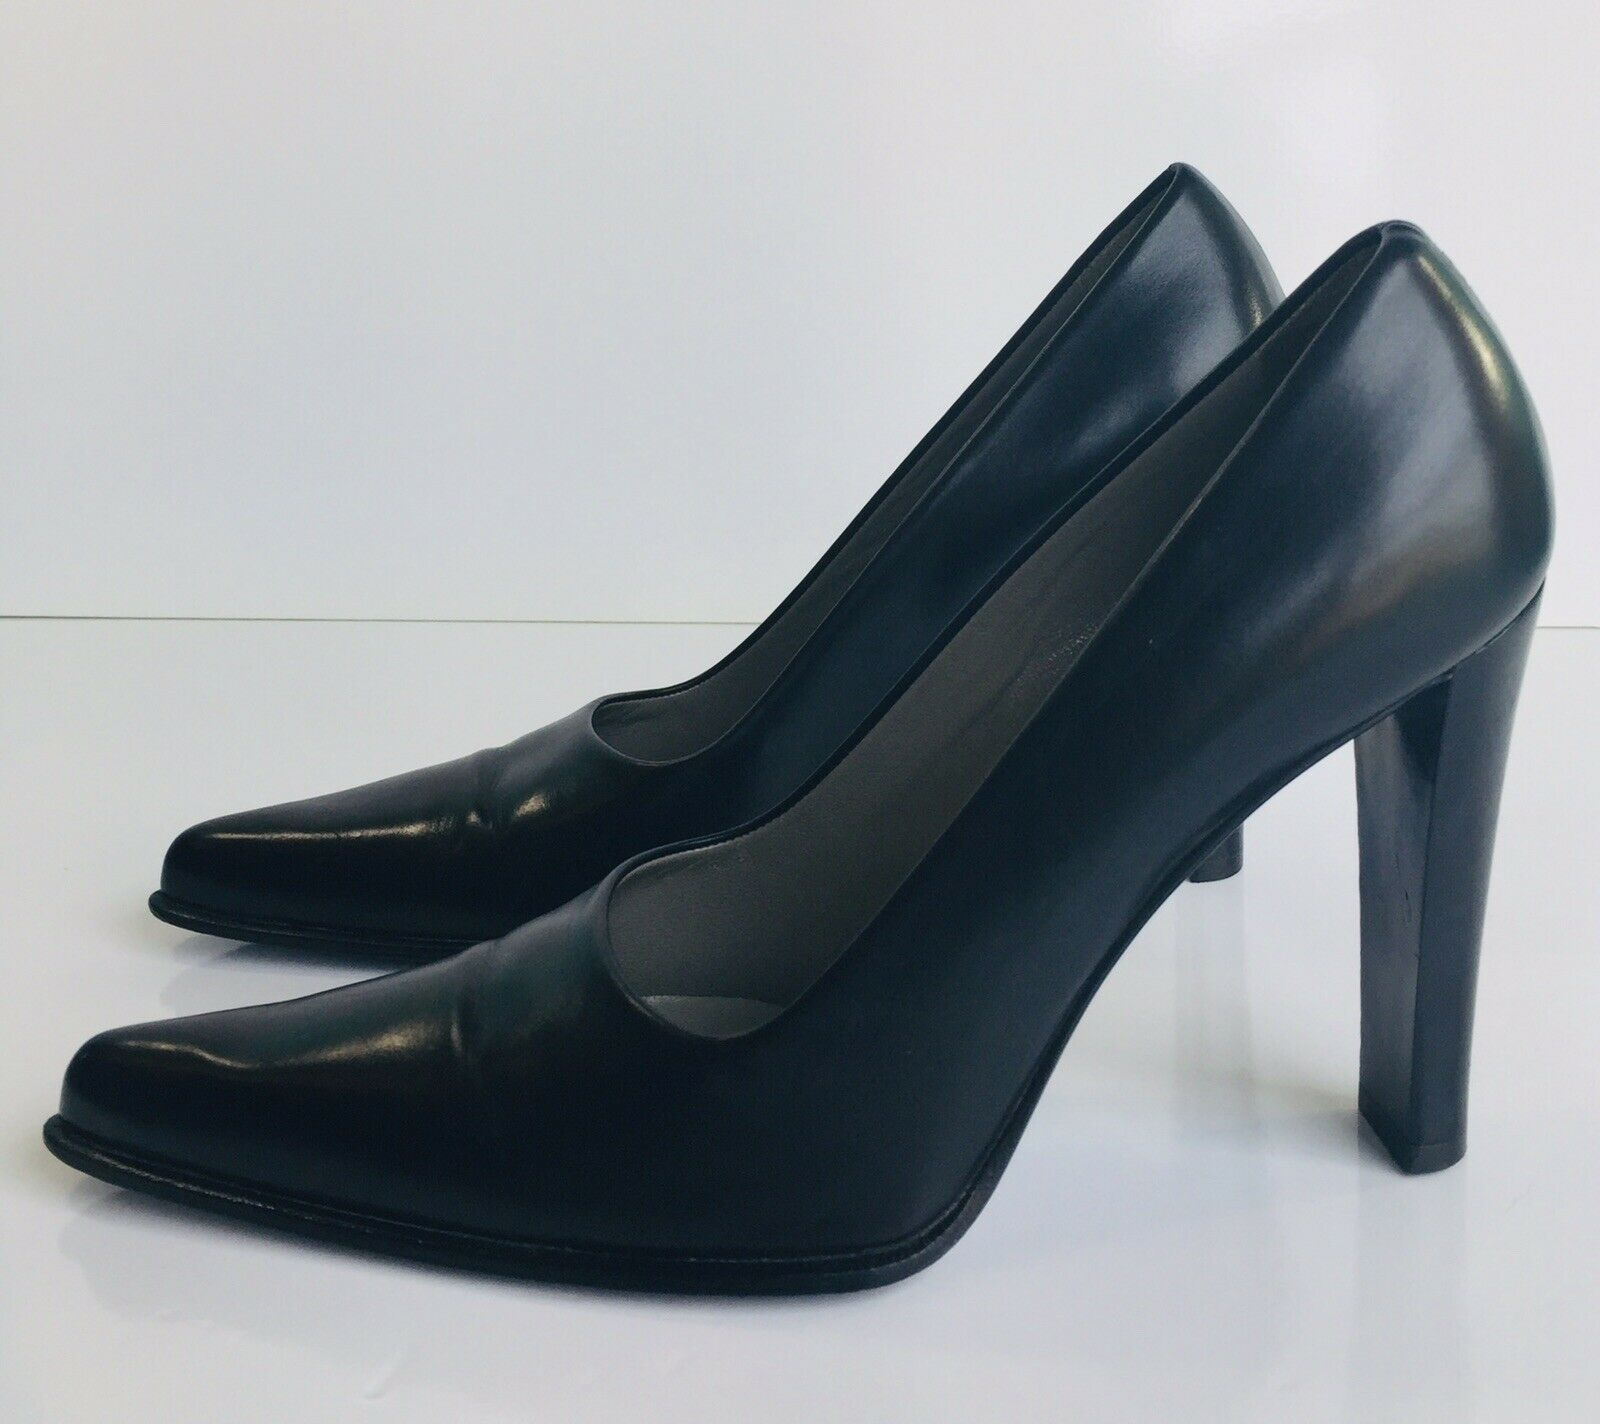 Vintage Prada Gorgeous Classic Black Leather Block Heel Pumps Heels Size 36